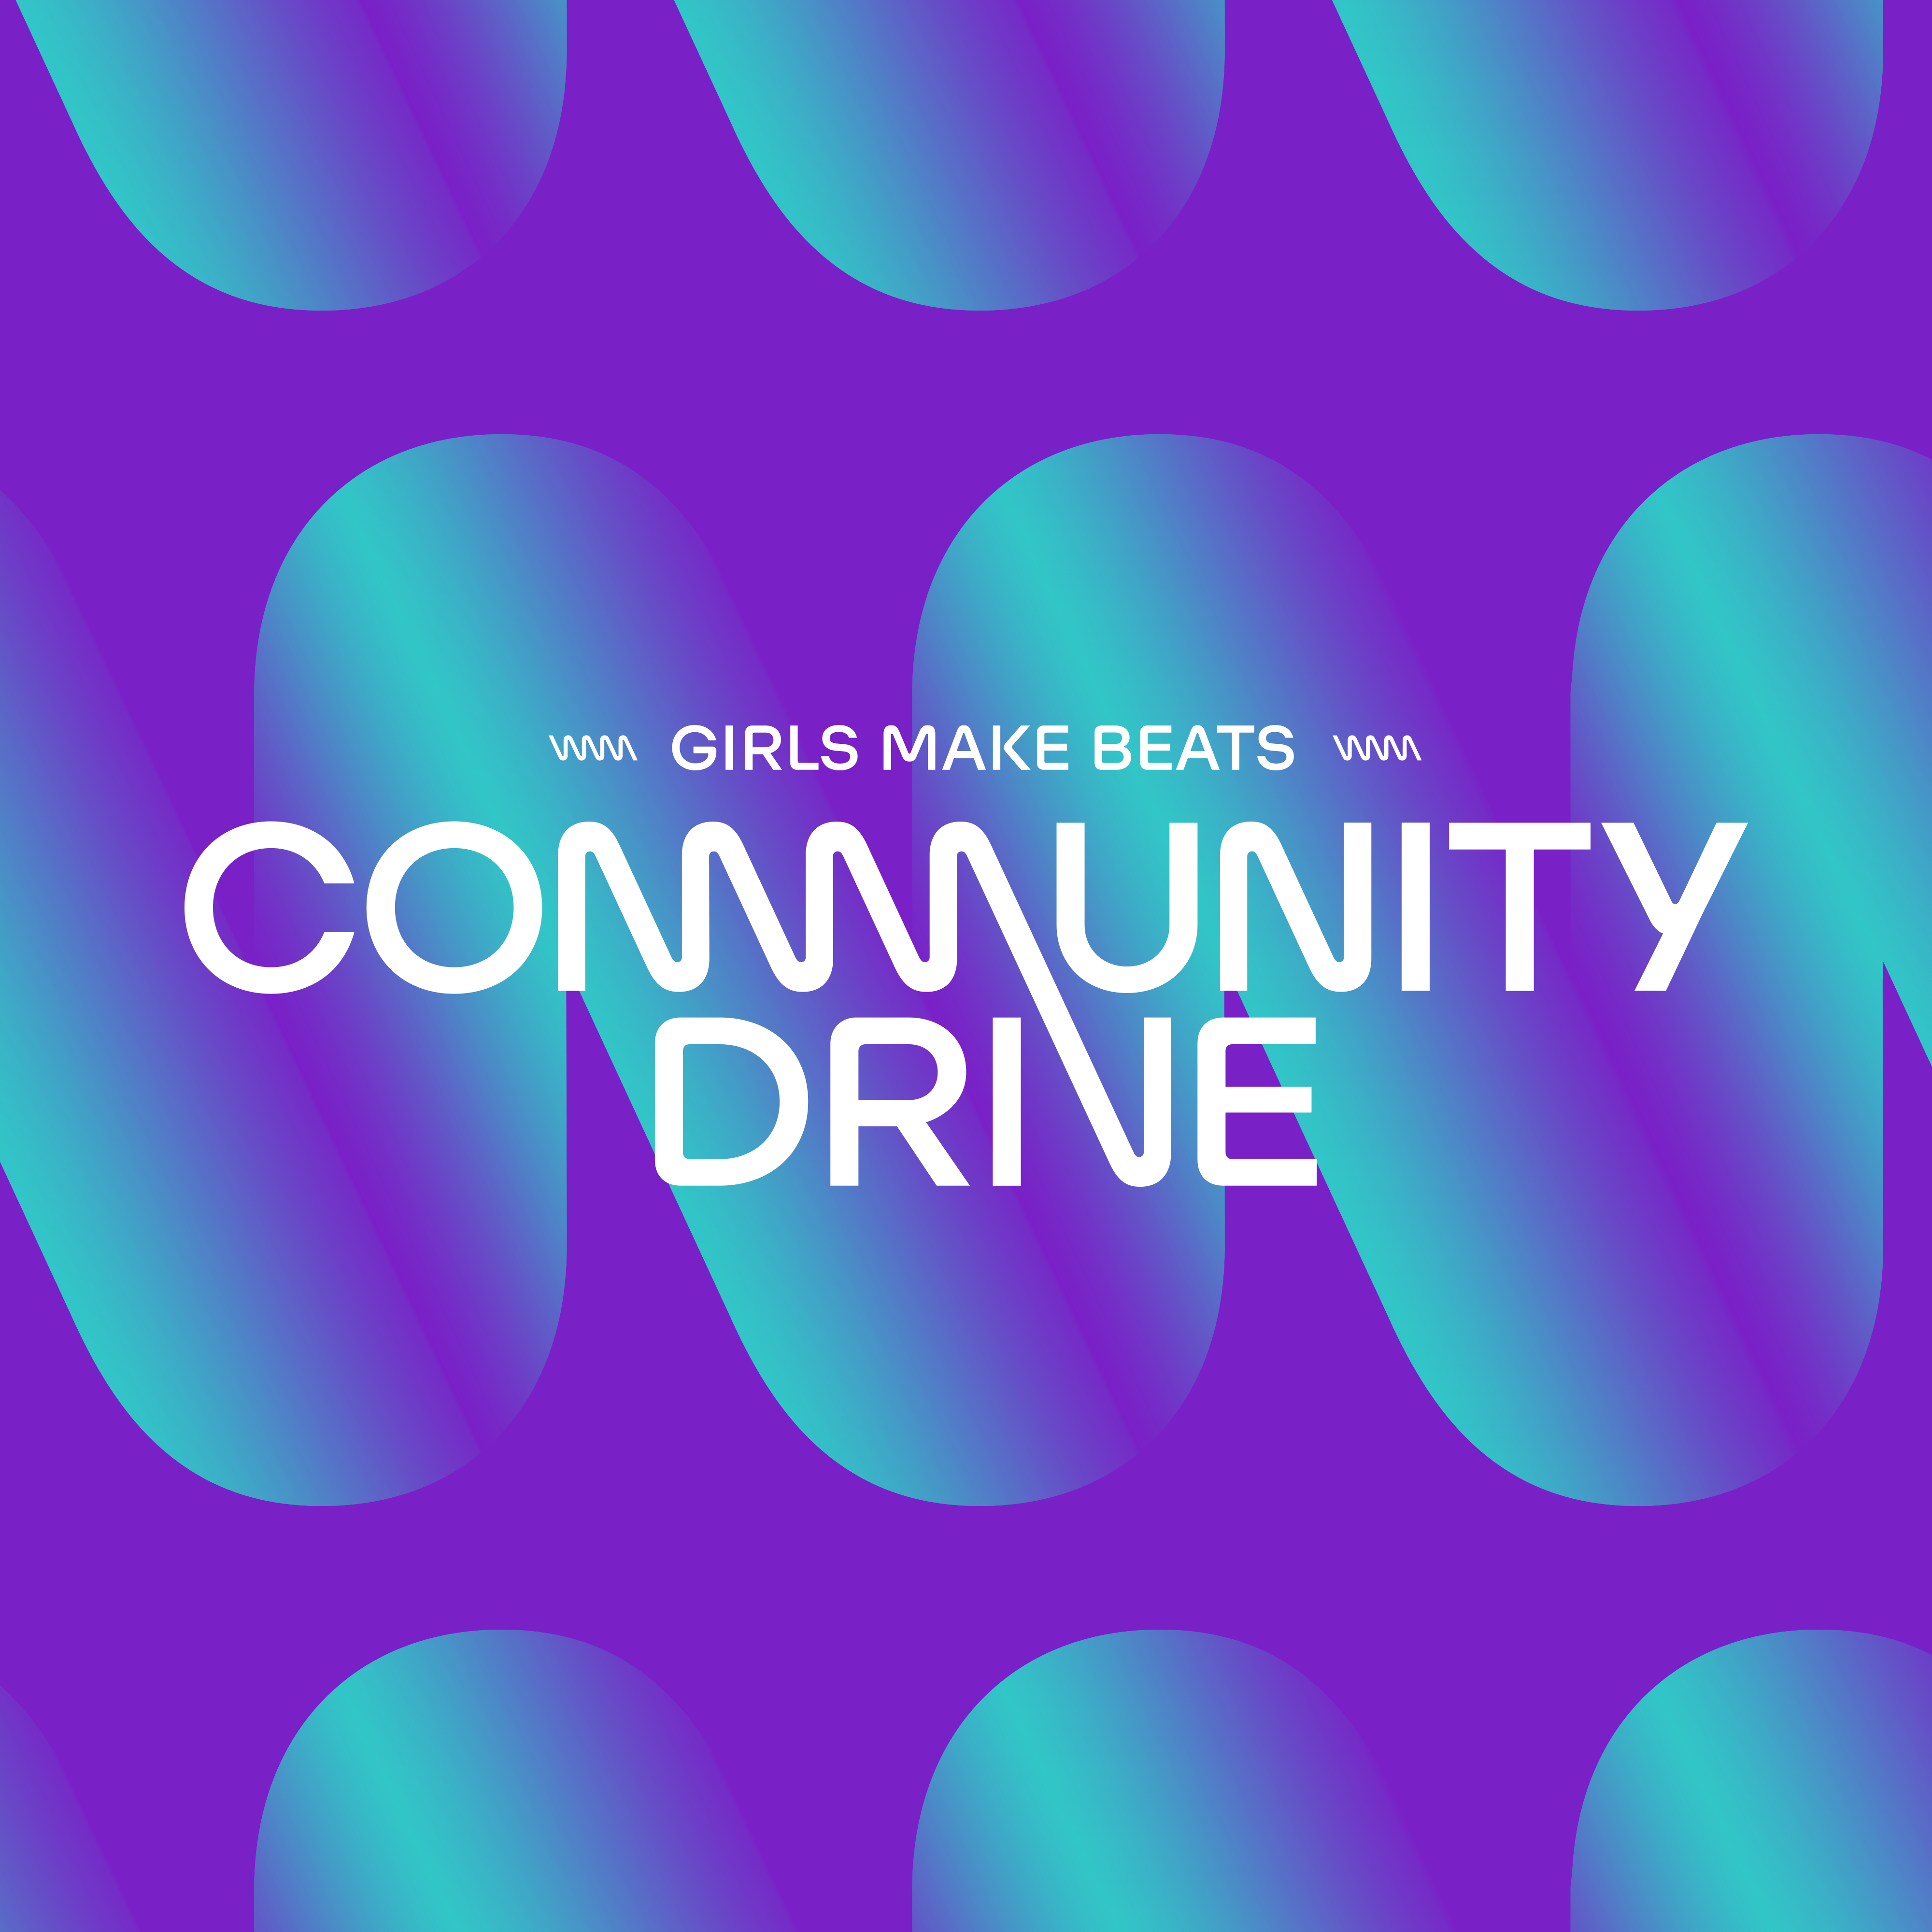 Download the free Community Drive 2021 Sound Pack here